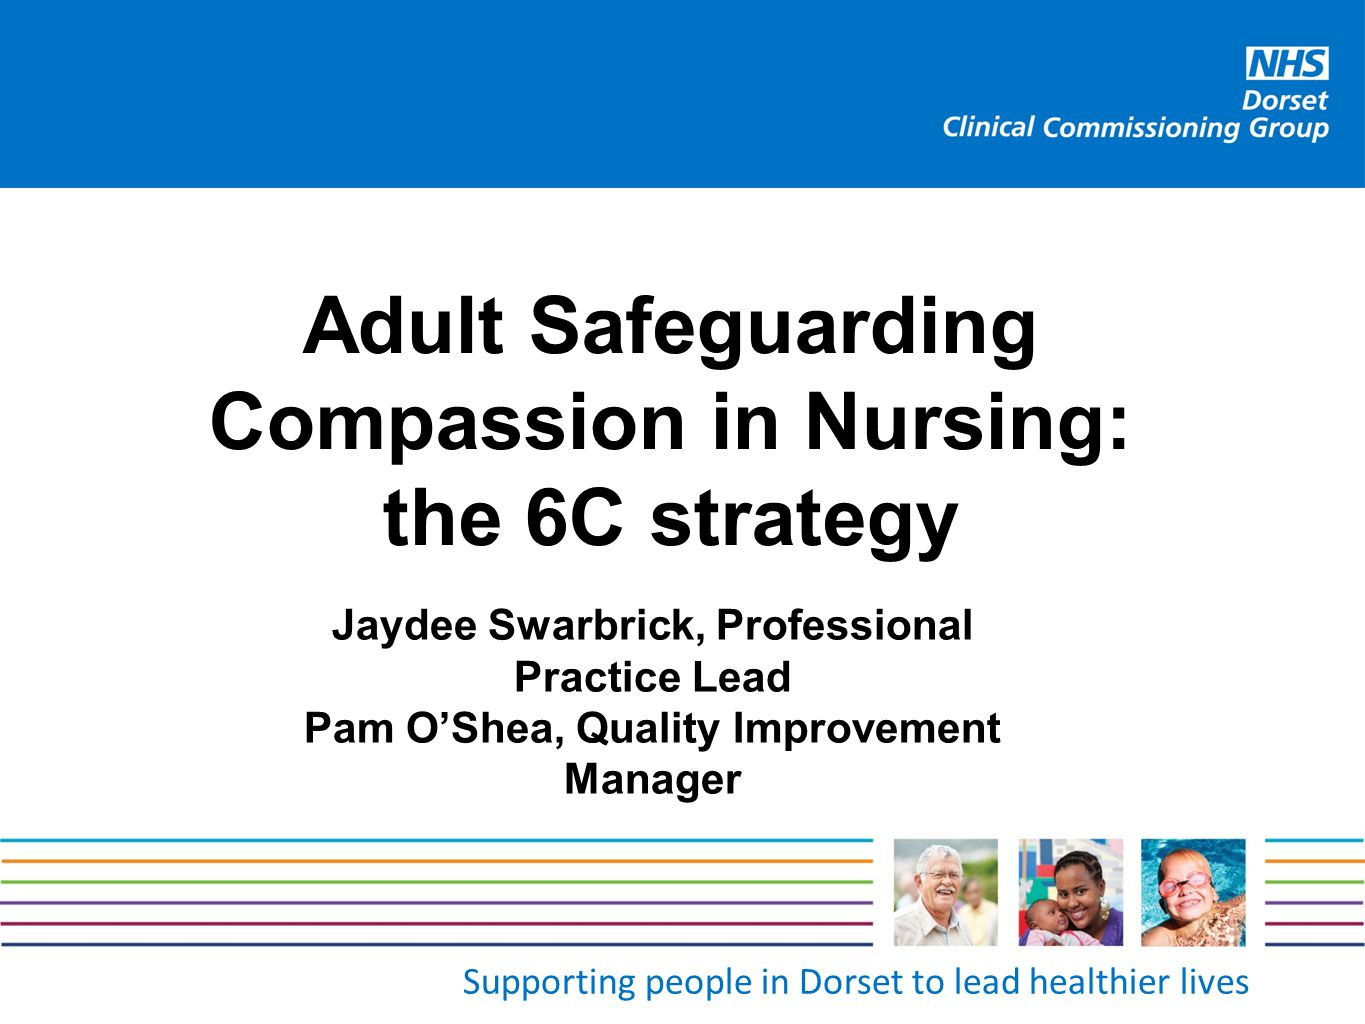 Adult Safeguarding Compassion in Nursing: the 6C strategy